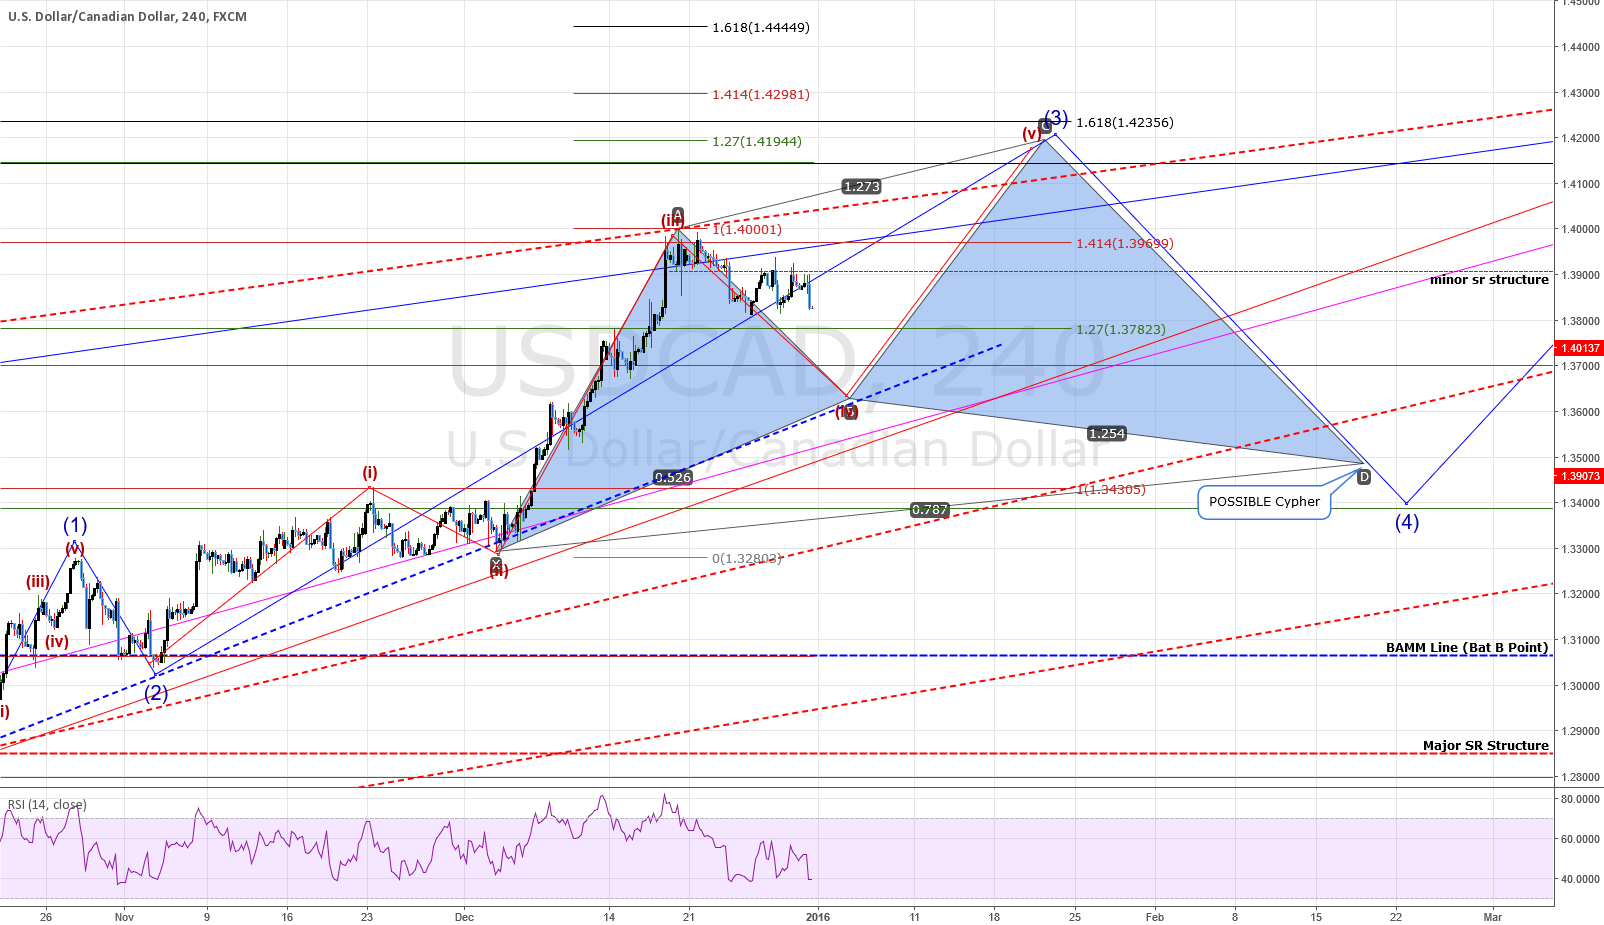 FULL ANALYSIS: USDCAD: Some More Upside Before The Fall?